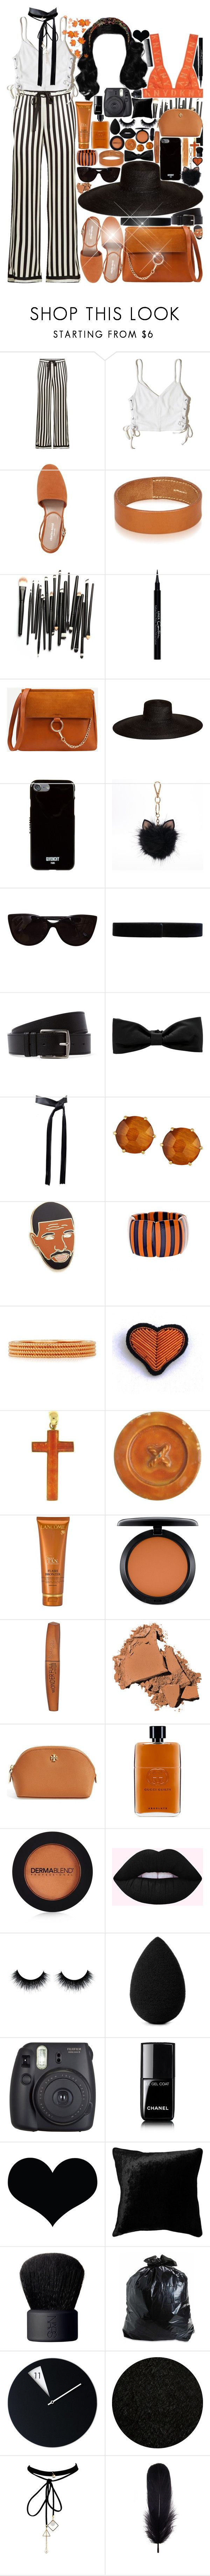 """Vibe love love crazy"" by kam4beautyy ❤ liked on Polyvore featuring Morgan Lane, Hollister Co., Charles David, Hermès, Givenchy, Samuji, LC Lauren Conrad, Tiffany & Co., Jil Sander and Michael Kors"